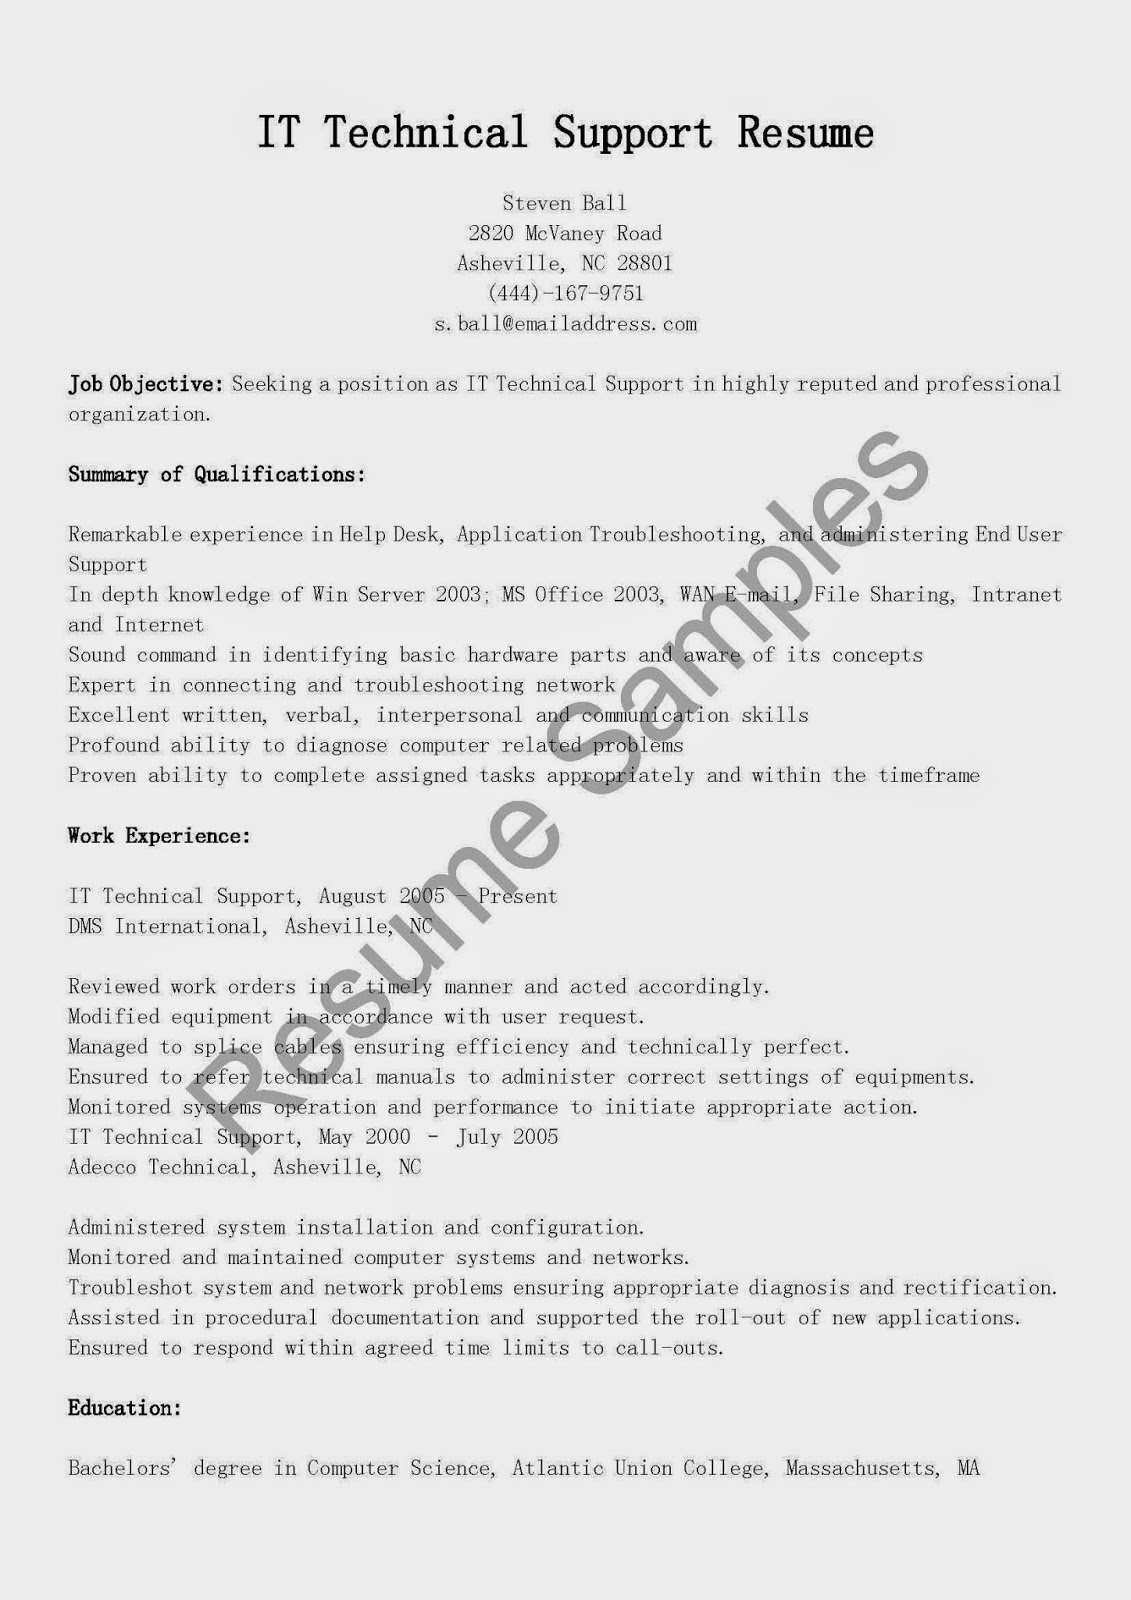 Technical Support Resume Sample Resume Samples It Technical Support Resume Sample